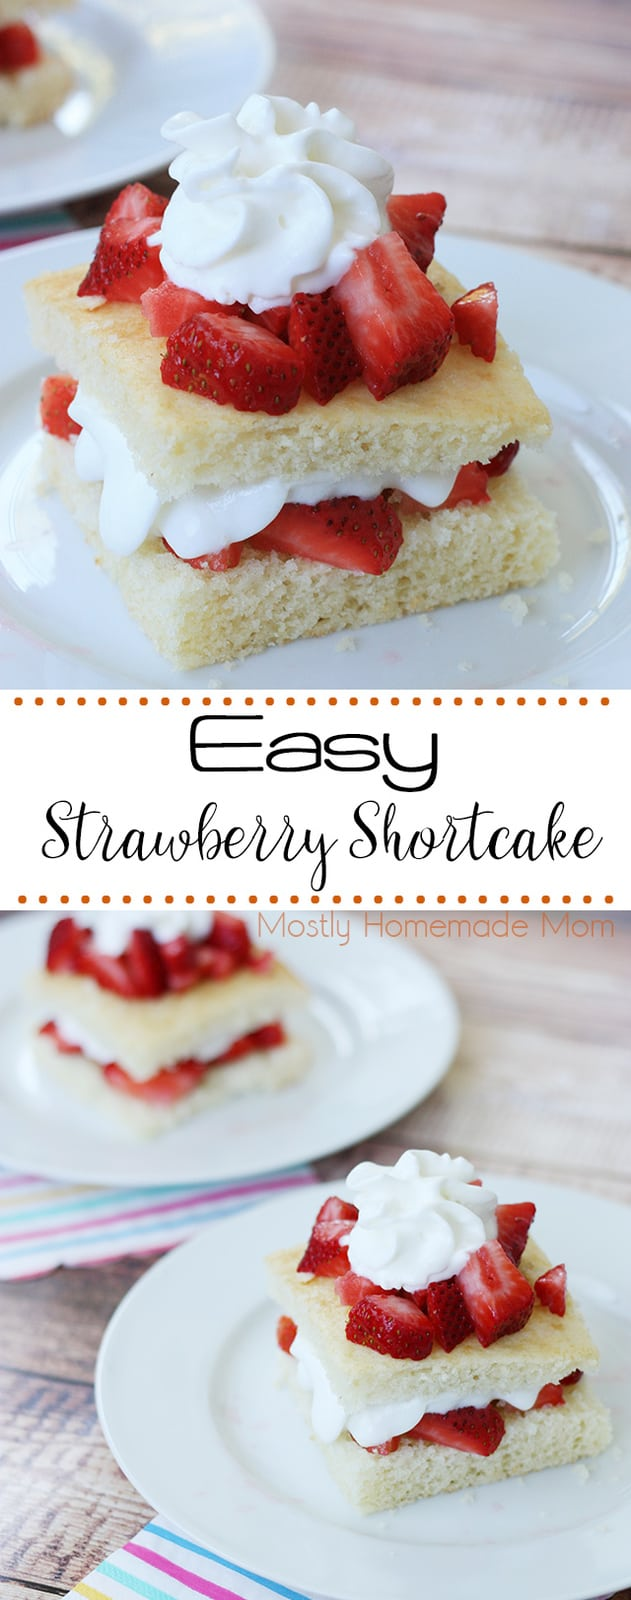 This Easy Strawberry Shortcake Recipe is perfect with fresh picked berries! Split this easy cake in half and layer whipped cream and chopped strawberries for a special dessert treat! #strawberryshortcake #strawberry #dessert #recipe